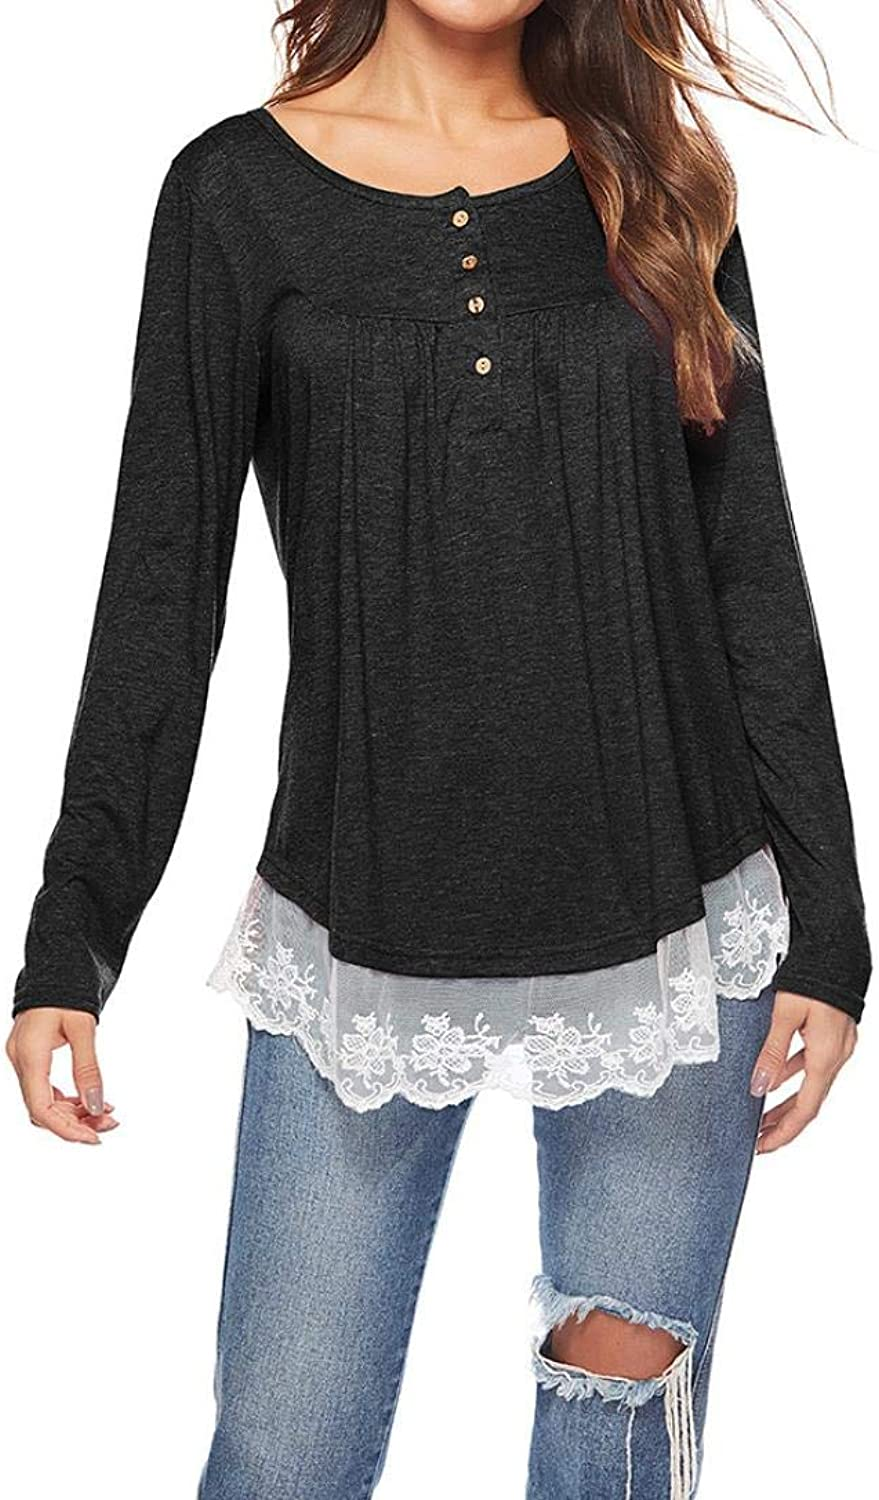 Women Autumn Casual Long Sleeve Lace Patchwork Blouse Loose Tunic Tops T-Shirt (color   Black, Size   S)